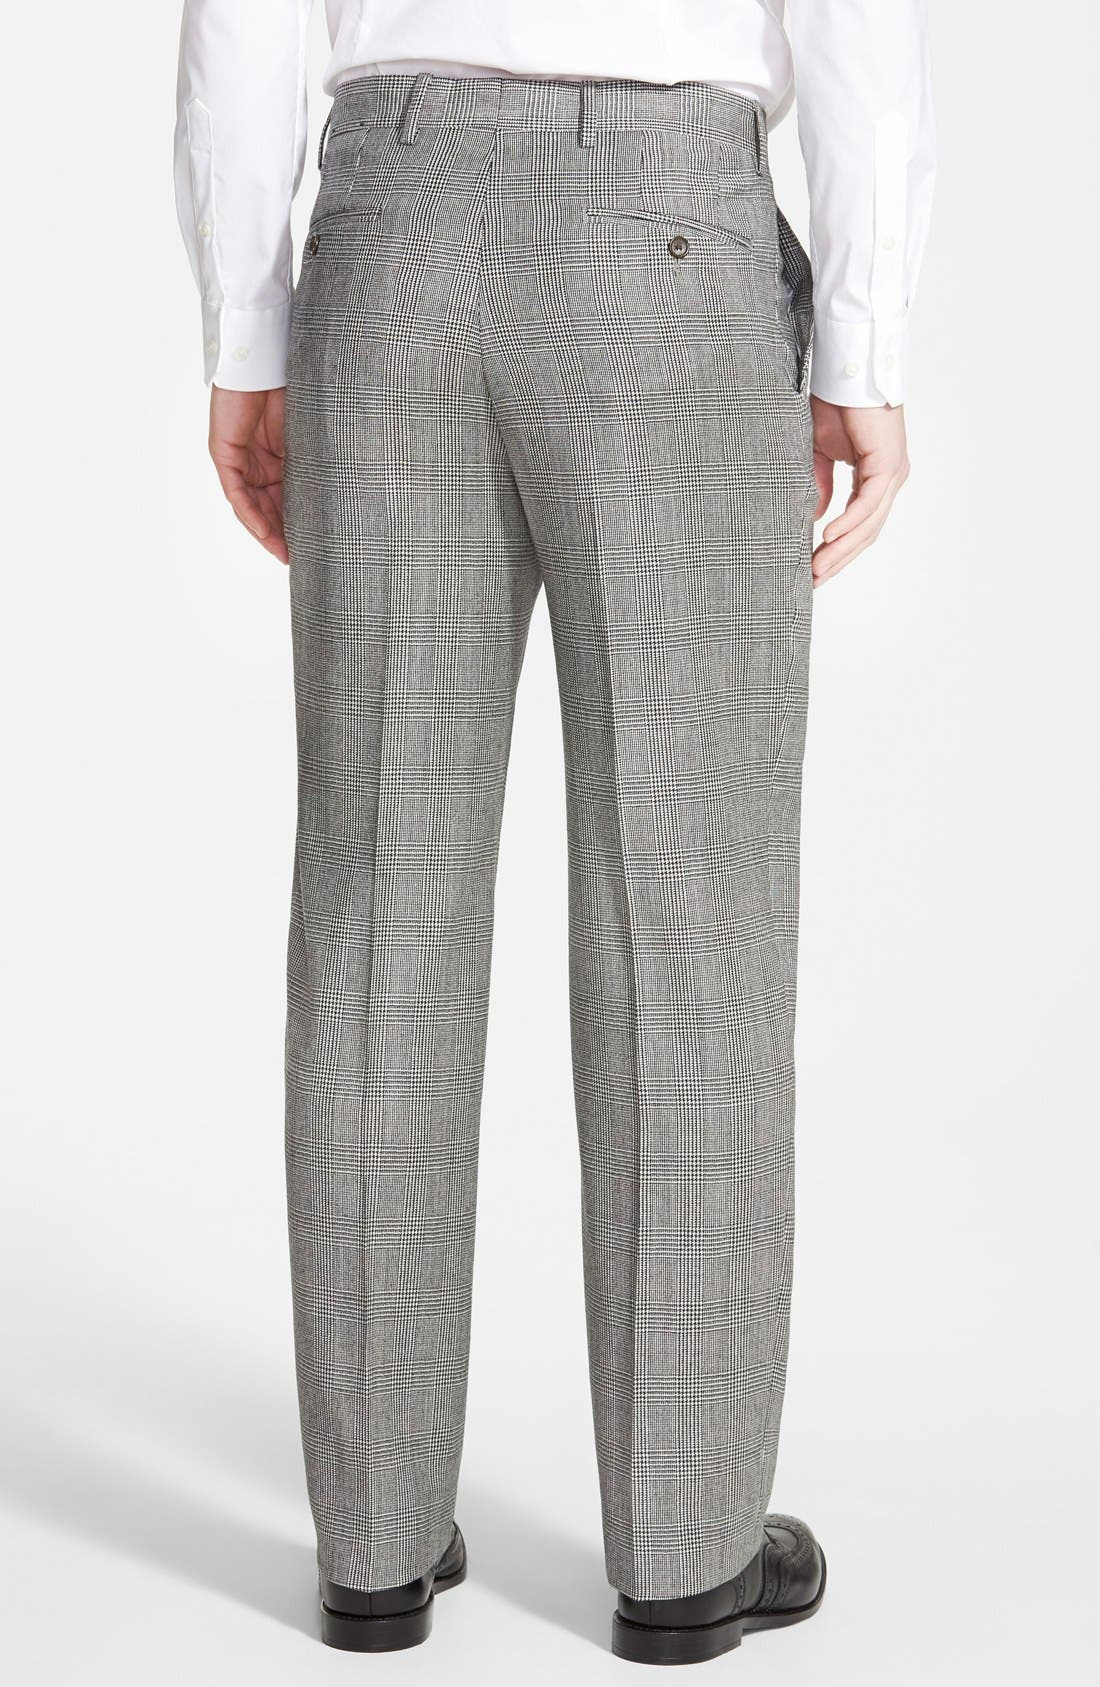 Flat Front Plaid Wool Trousers,                             Alternate thumbnail 3, color,                             060